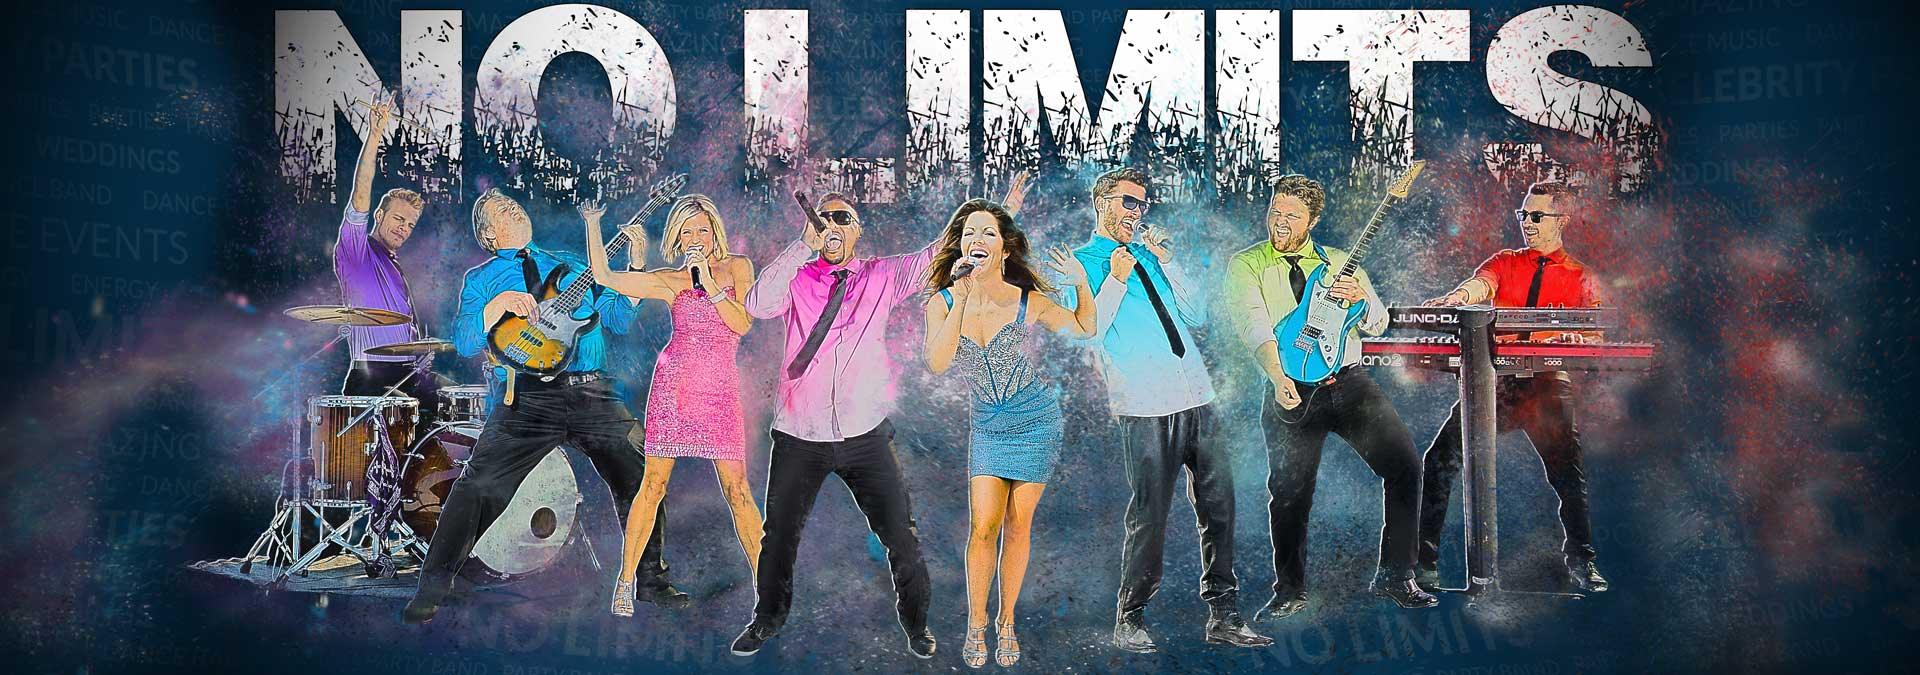 No Limits Band Composite Image